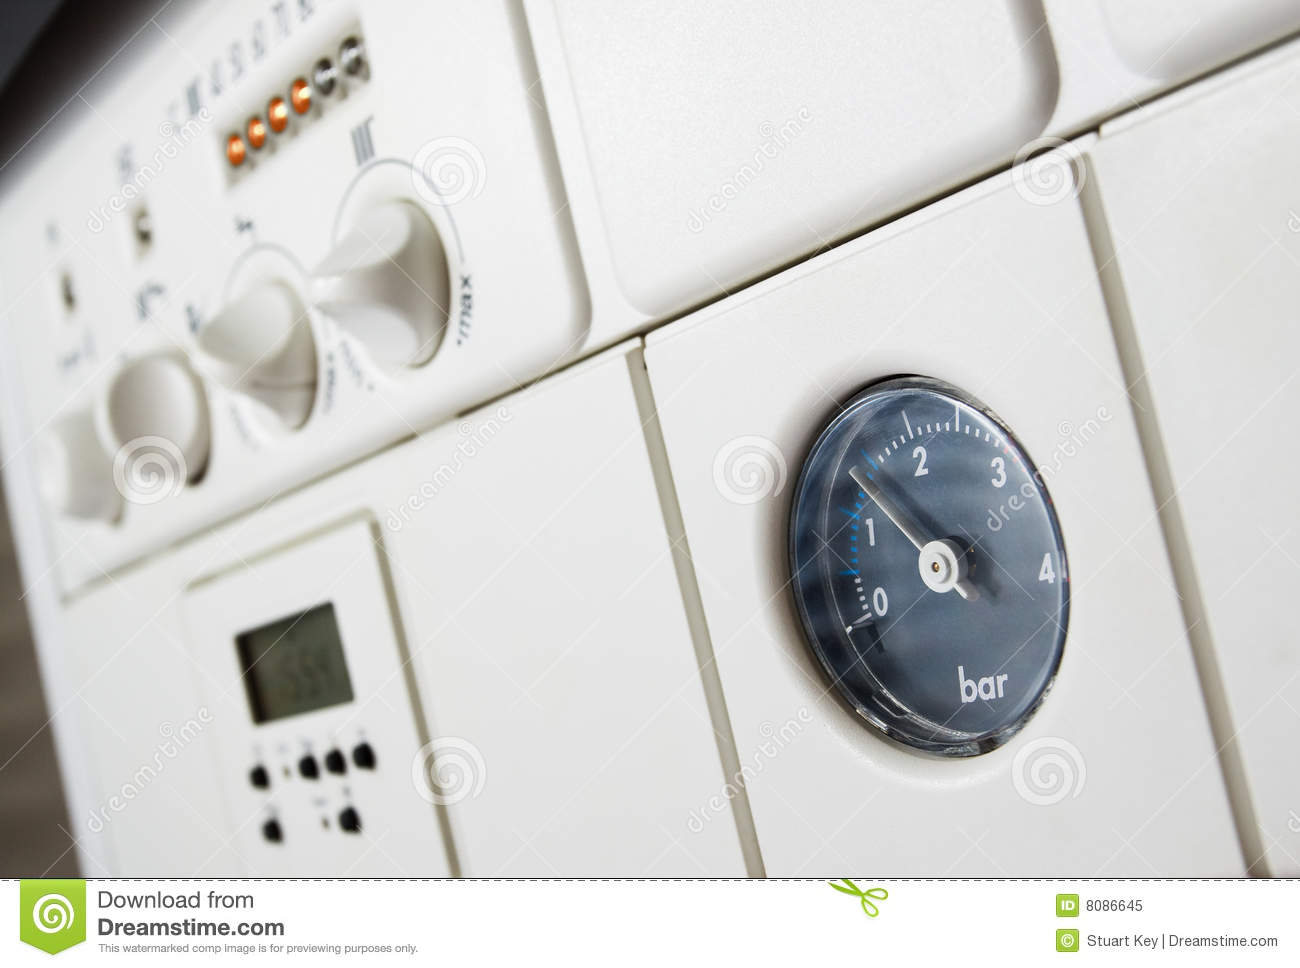 Central Heating Boiler Pressure Stock Image - Image of control ...